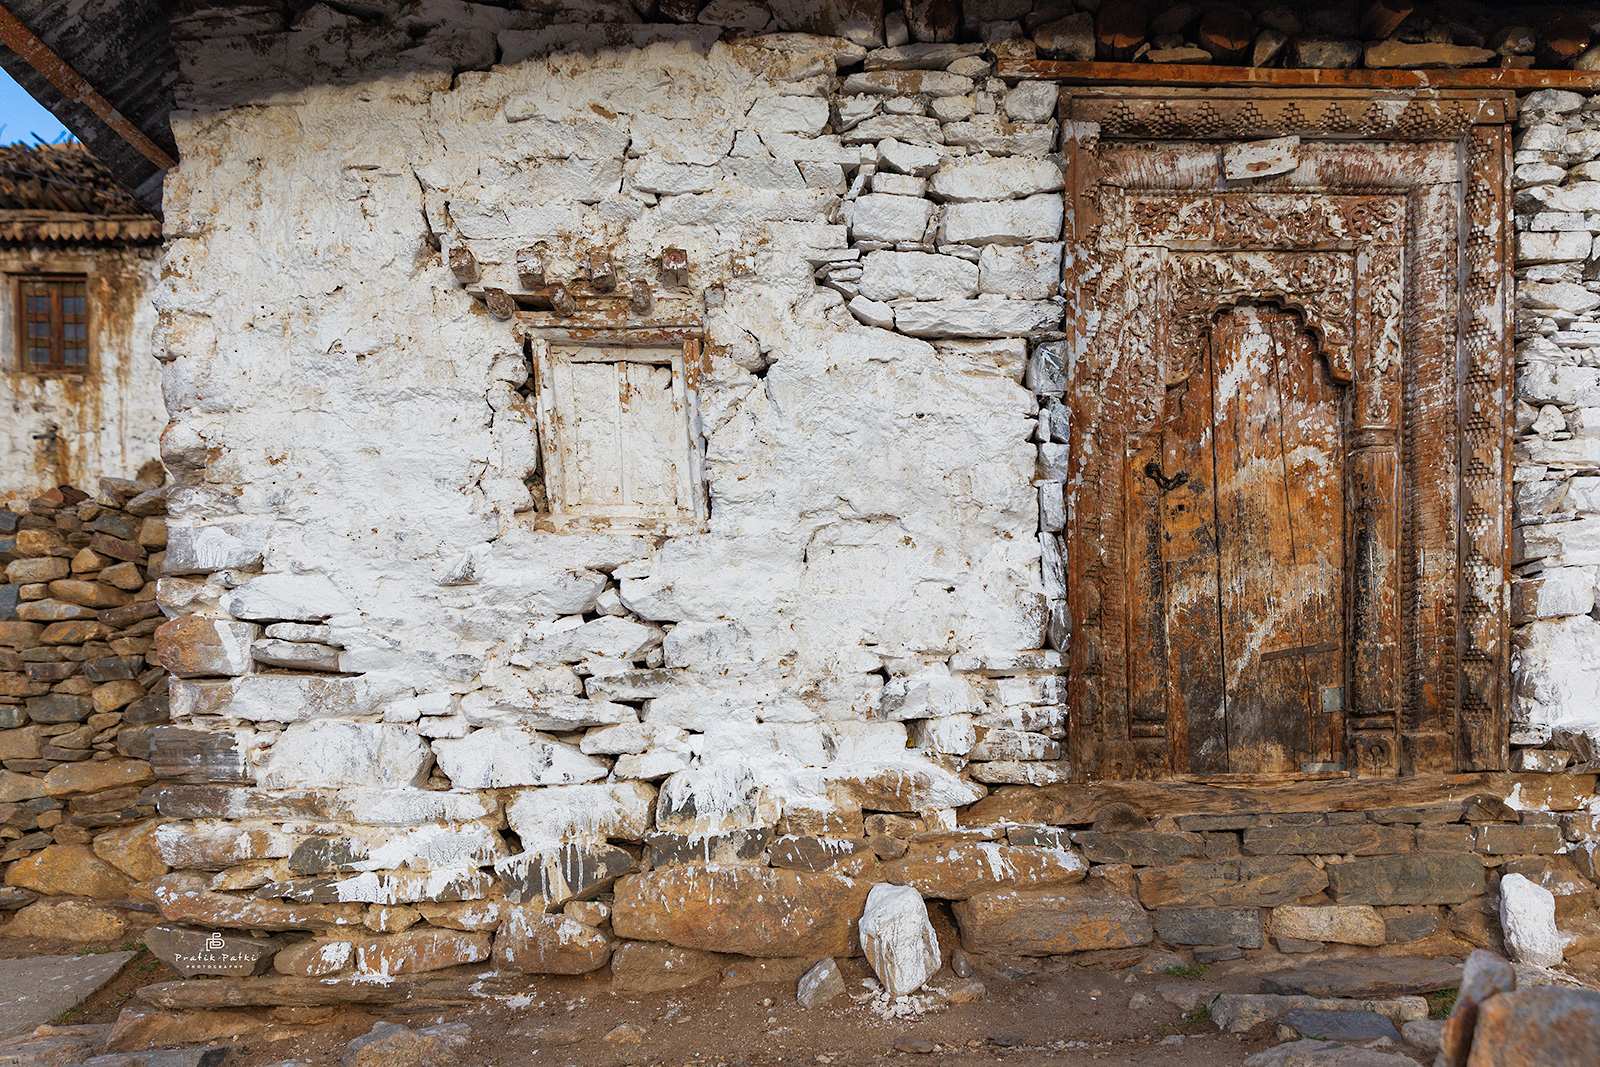 An old temple with a worn down wall